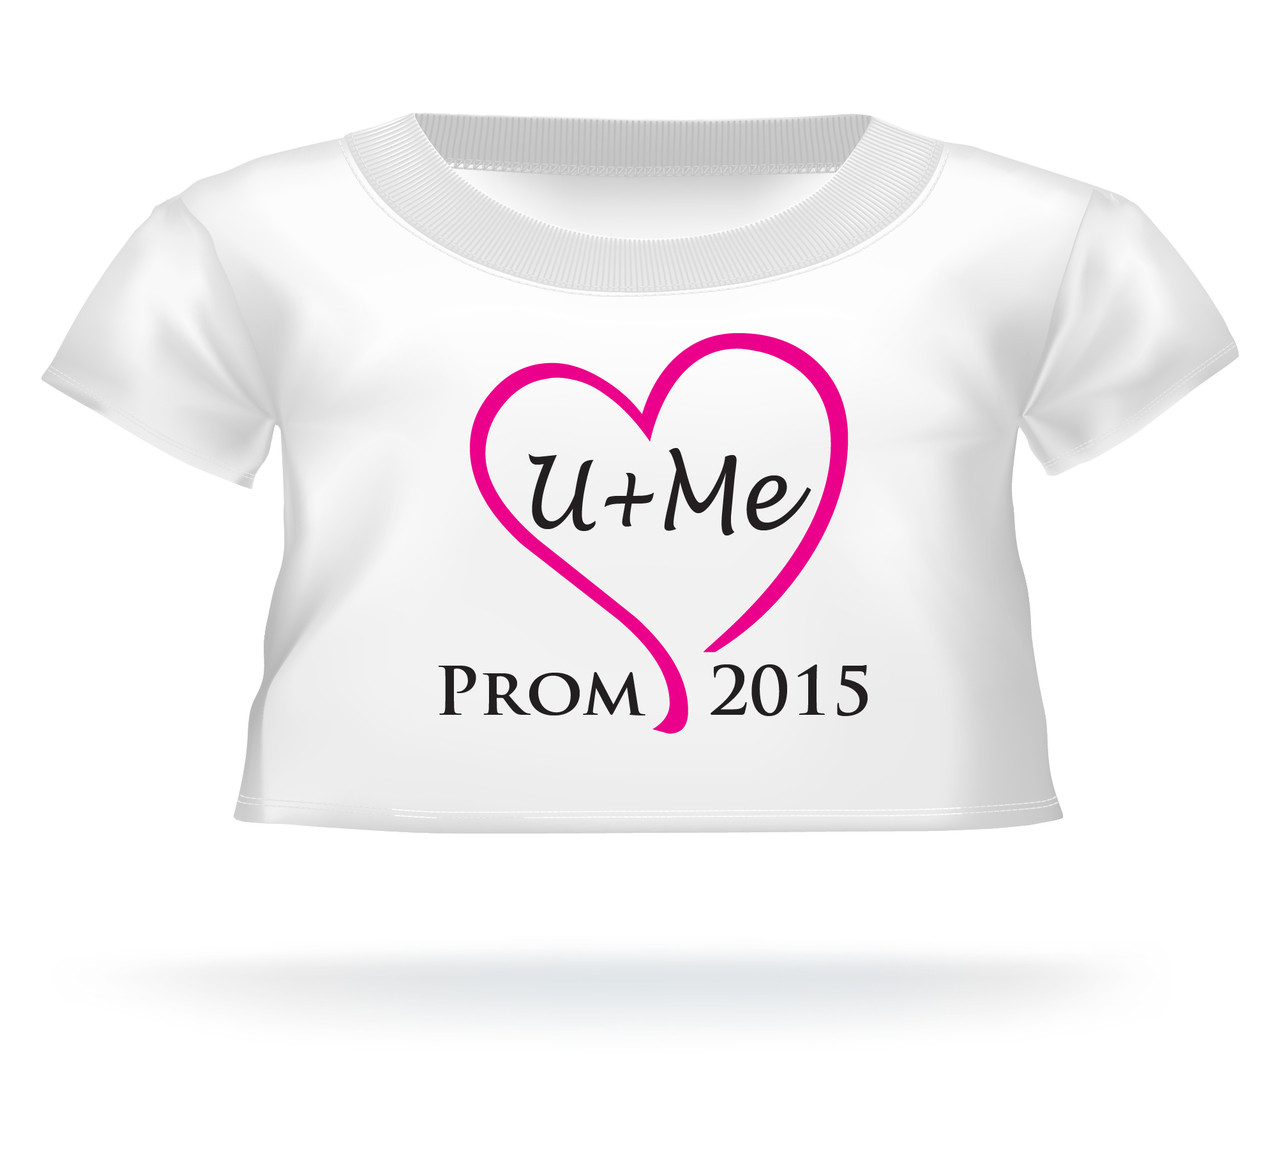 U+Me Prom 2015 Giant Teddy Bear Pink Heart  T-shirt